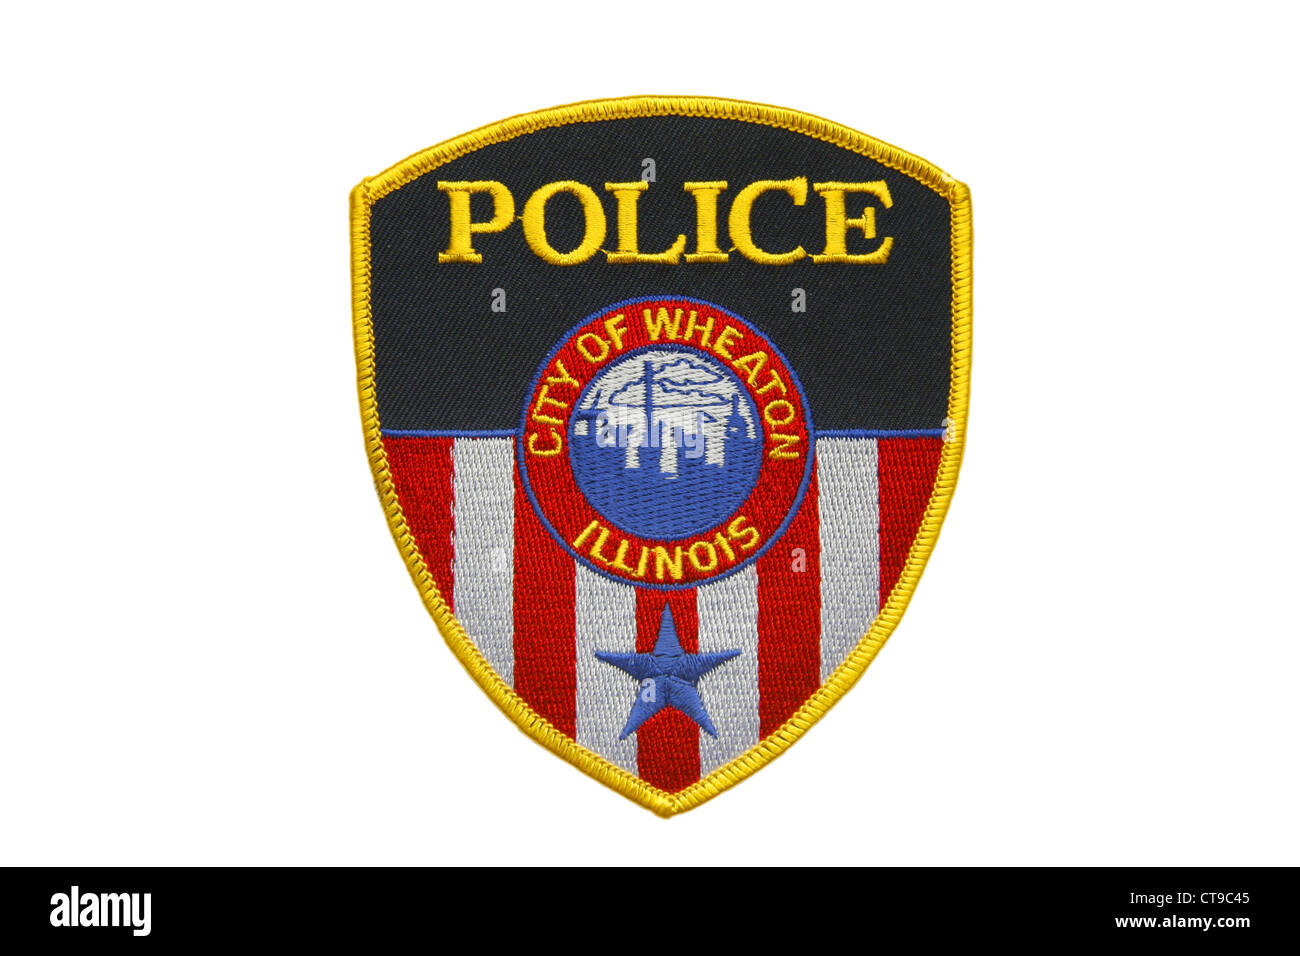 American police patch of the City of Wheaton Police Department Illinois - Stock Image